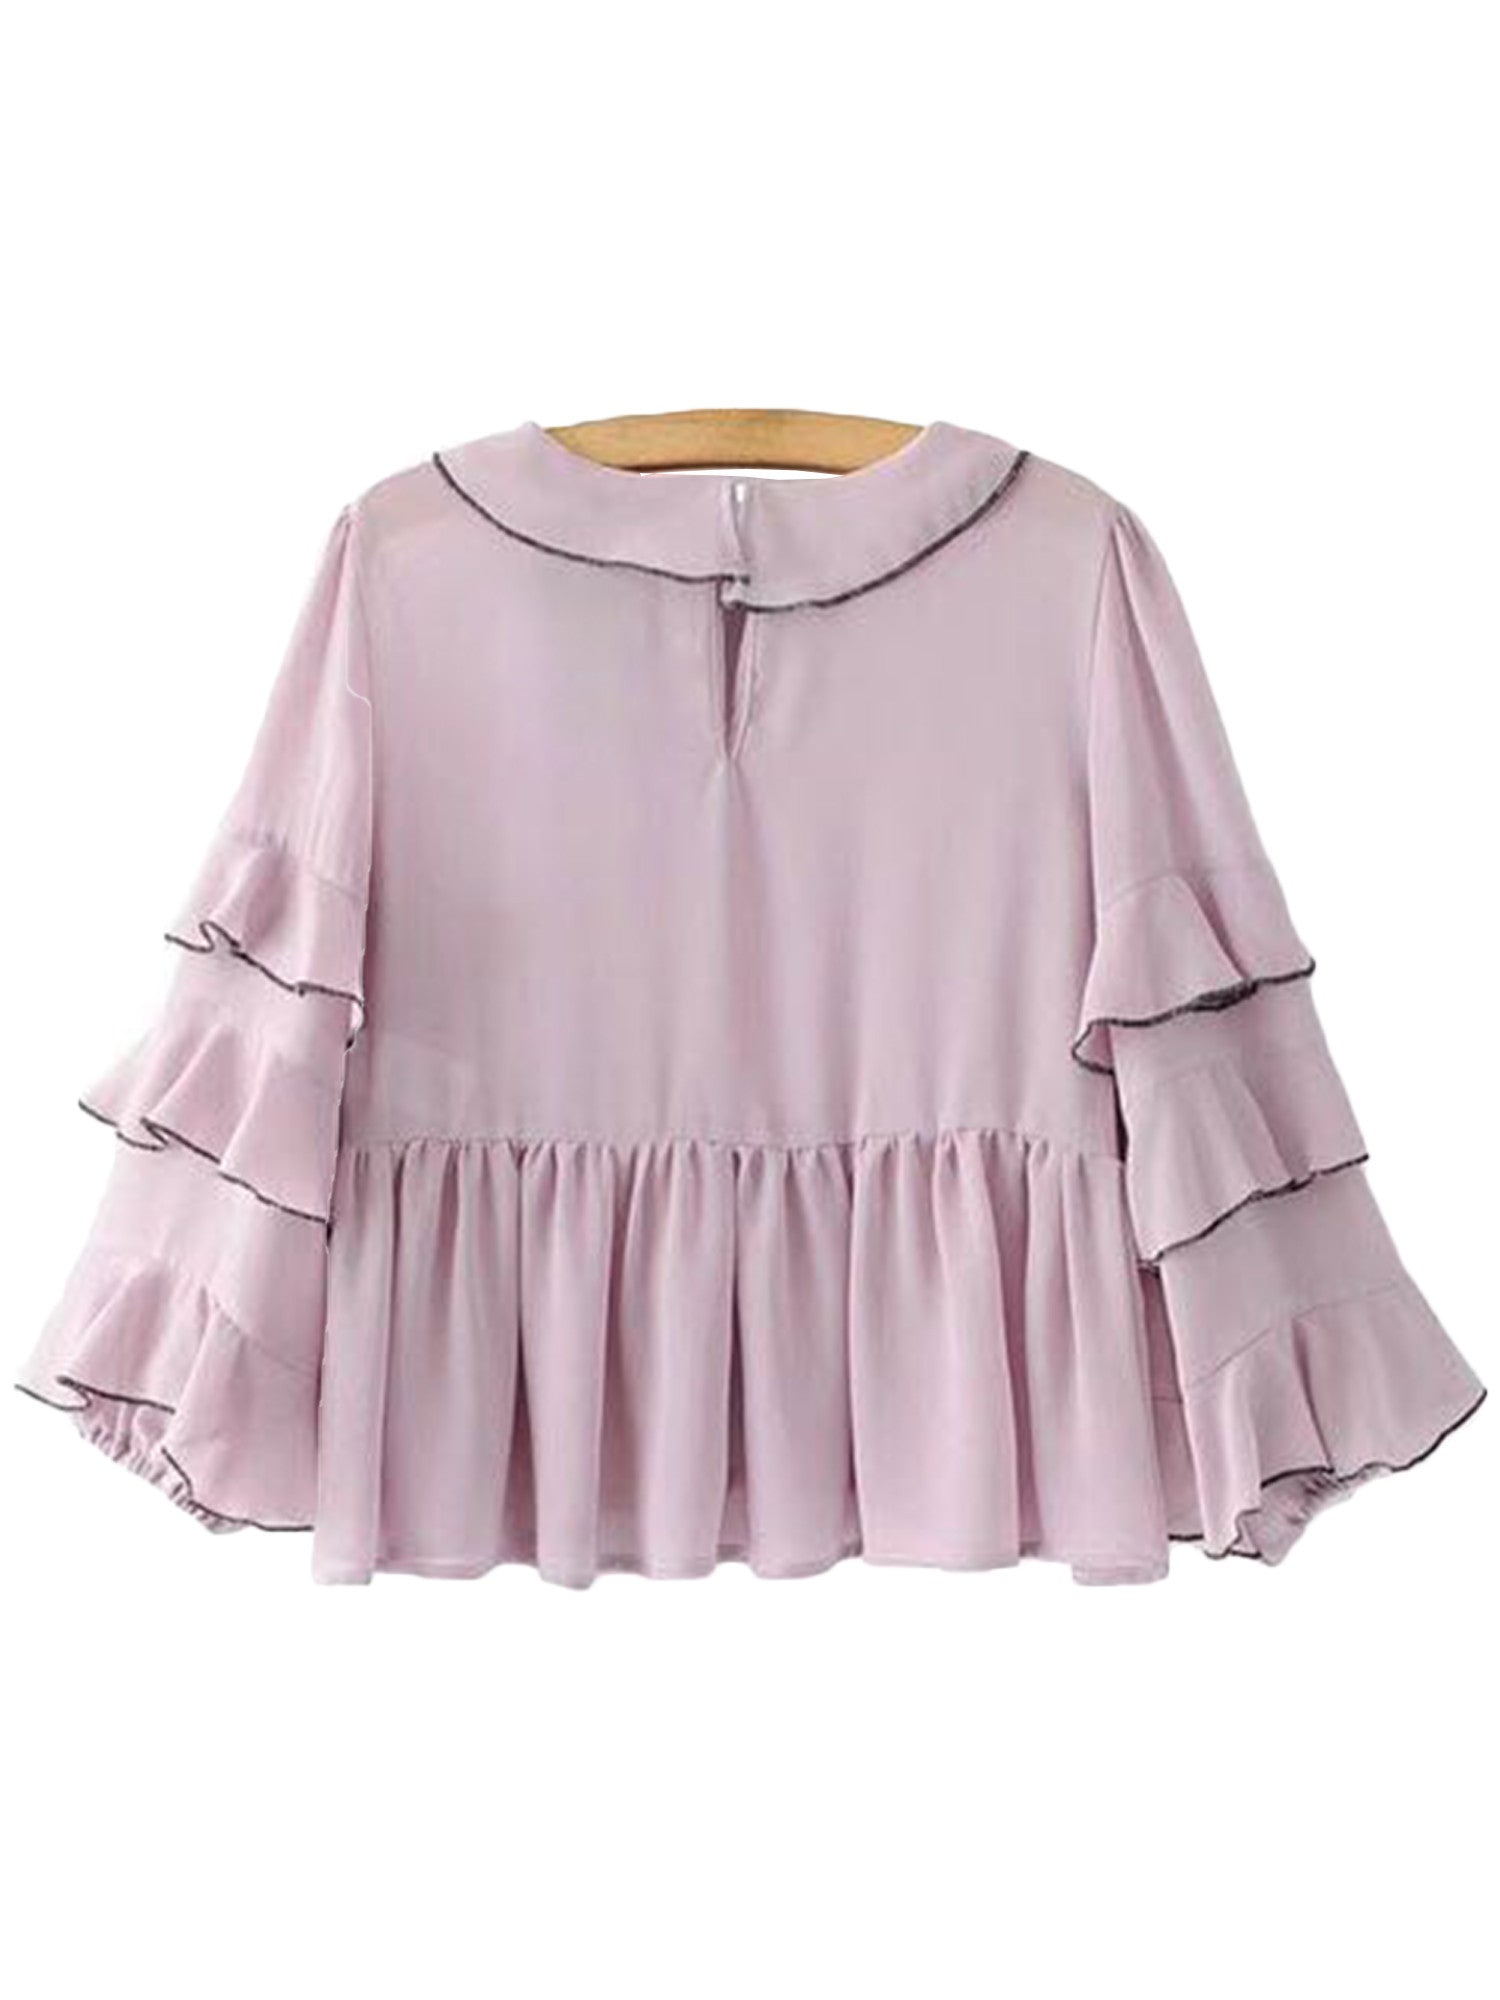 'Levi' Pink Ruffle Sleeve Dolly Peplum Top